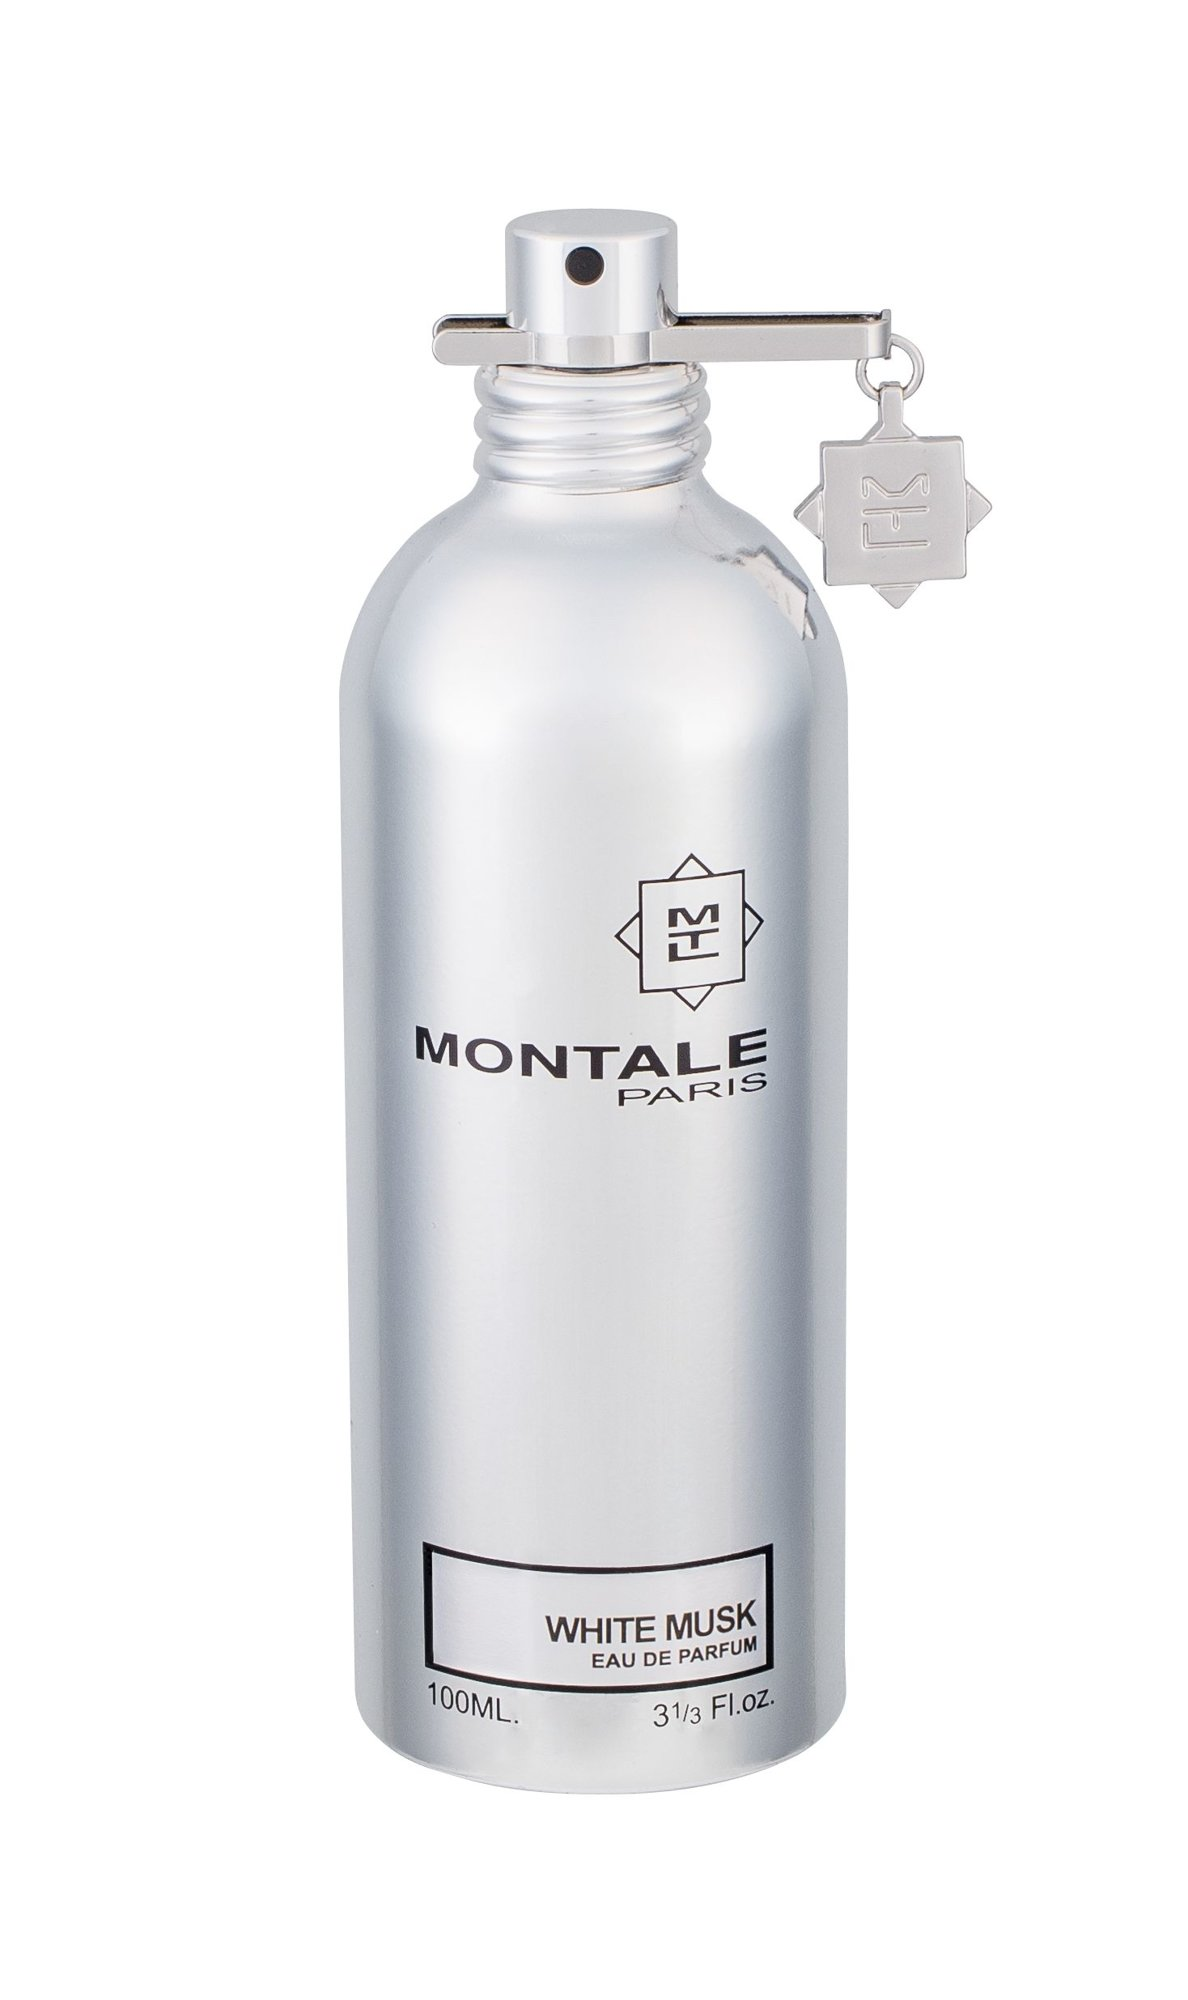 Montale Paris White Musk EDP 100ml